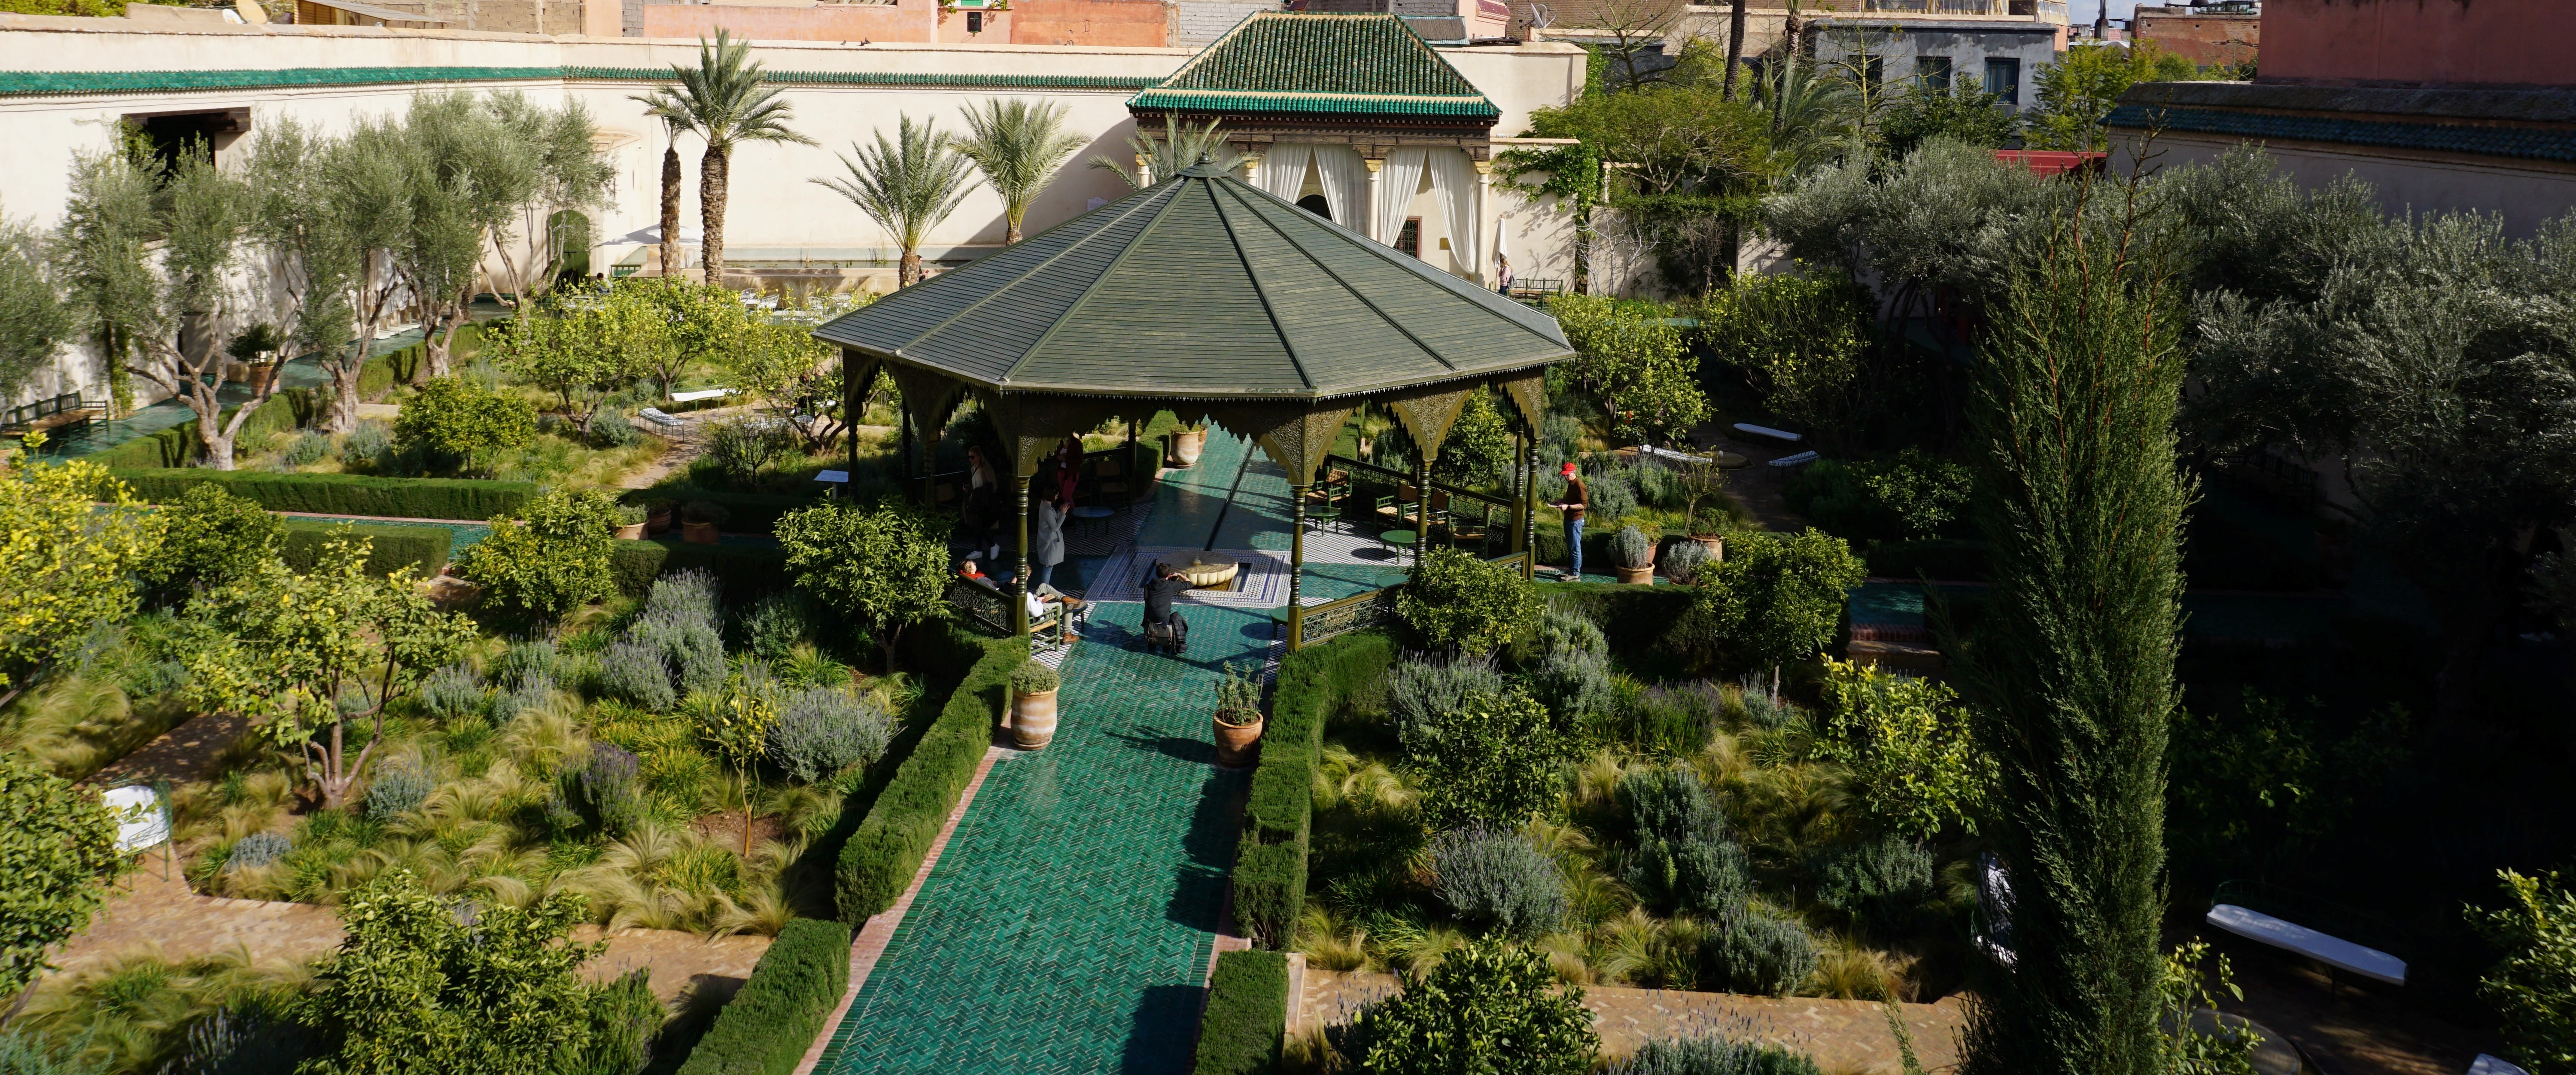 Best area to live in marrakech